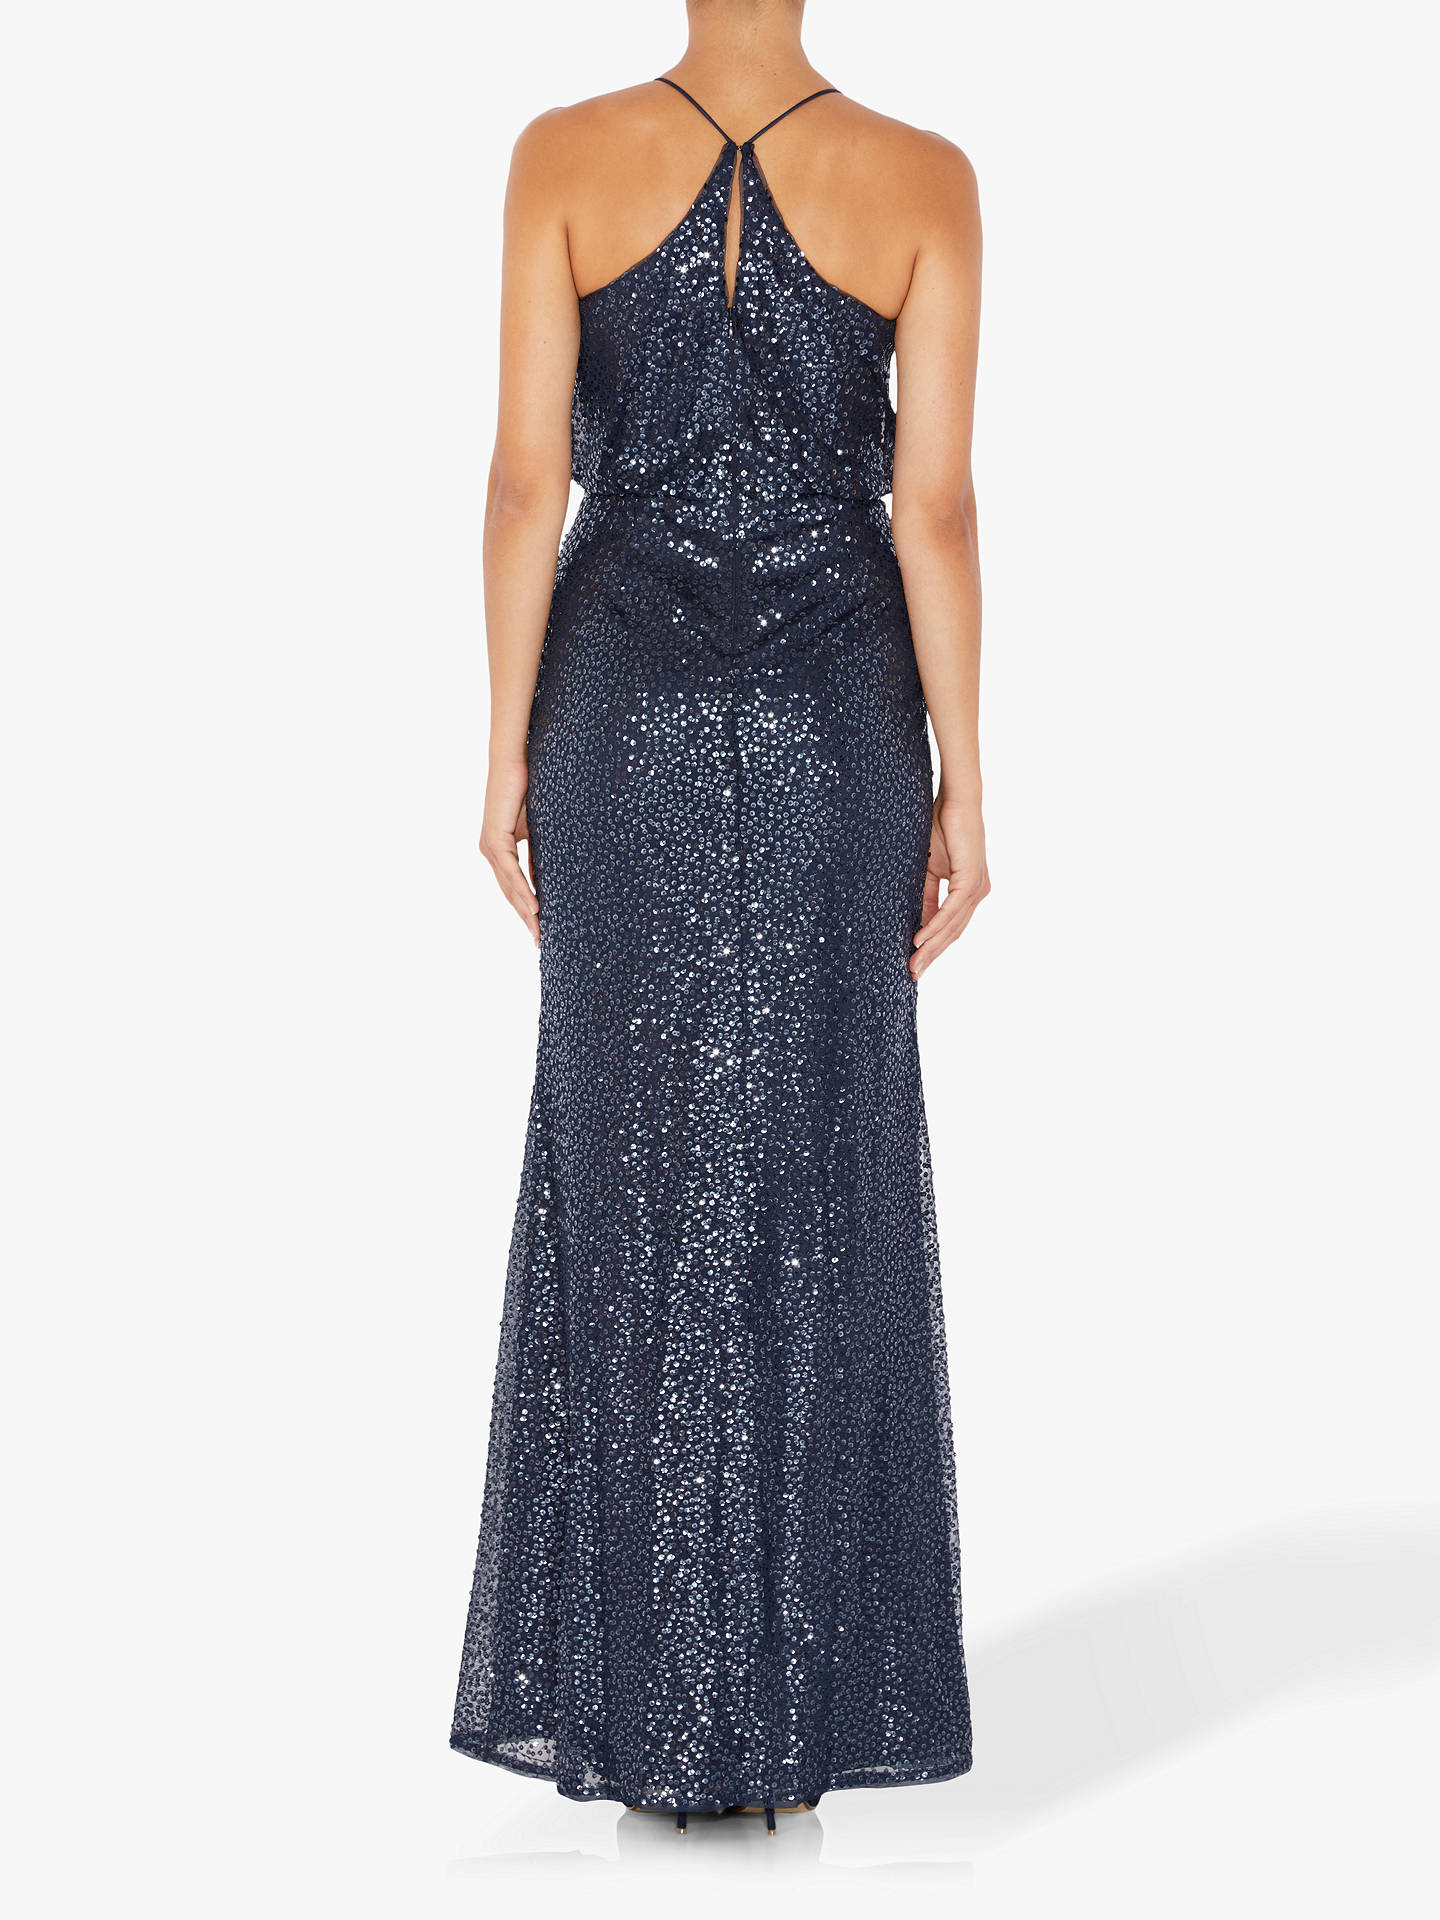 BuyAdrianna Papell Beaded Halterneck Maxi Dress, Blue, 14 Online at johnlewis.com